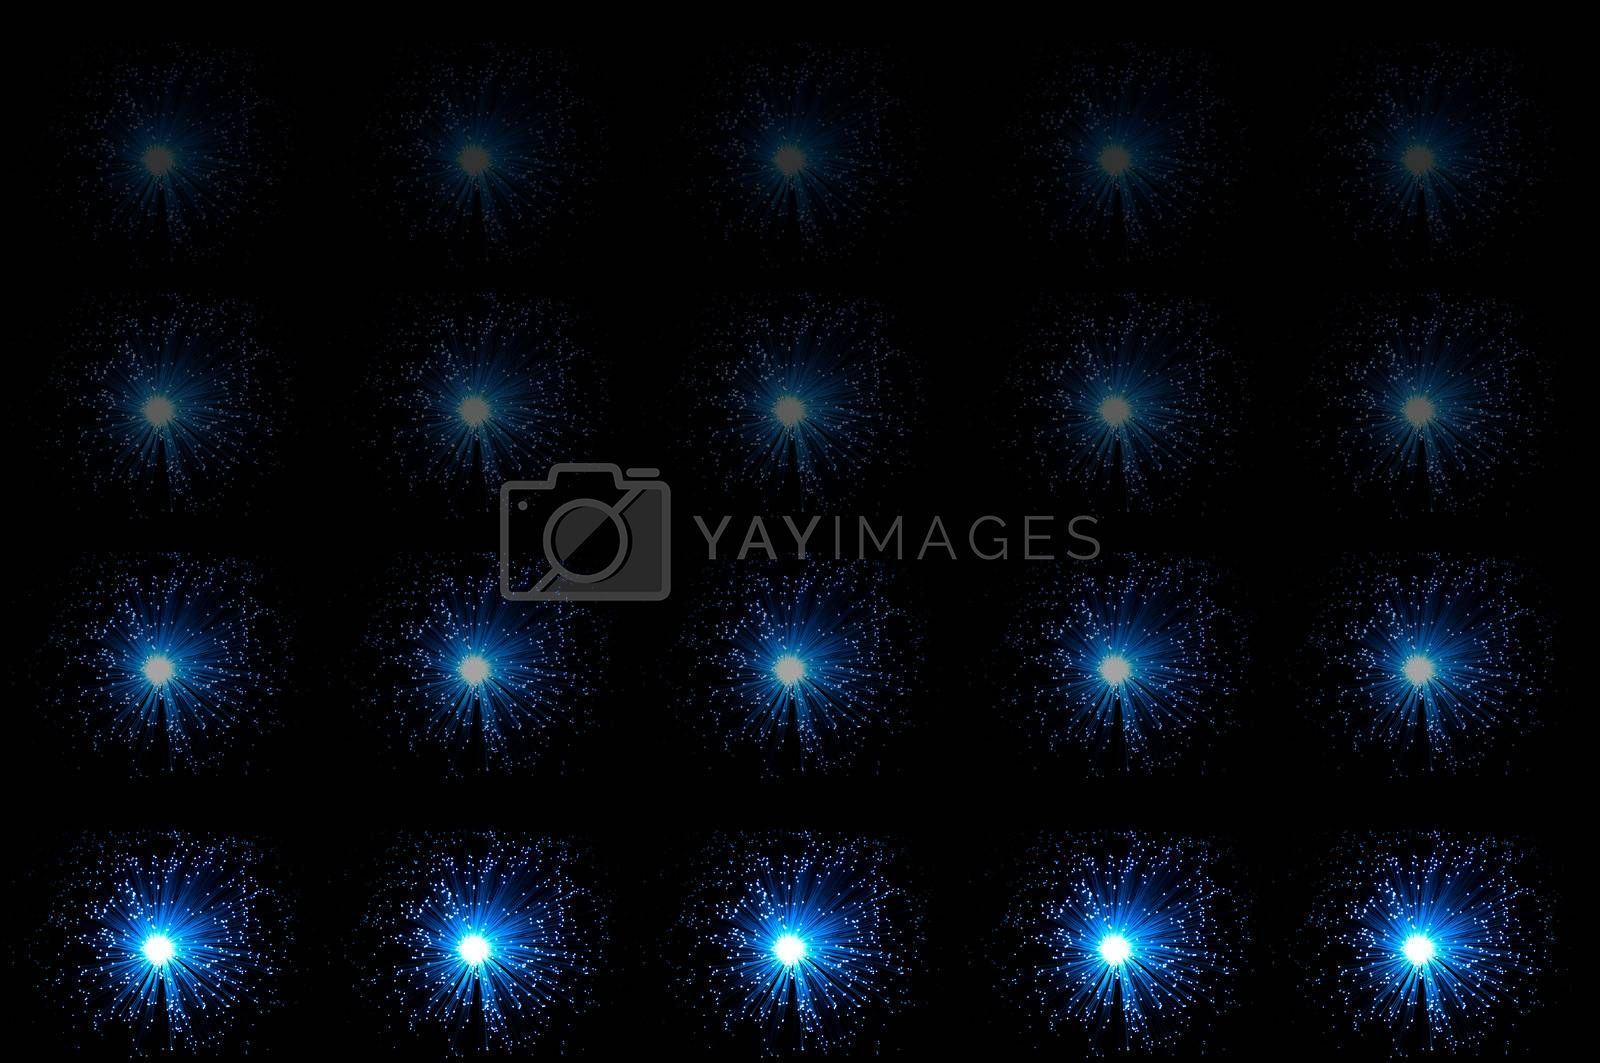 Twenty small illuminated blue fibre optic lamps in horizontal line formations with each line fading progressively towards the top of the image. Black background.